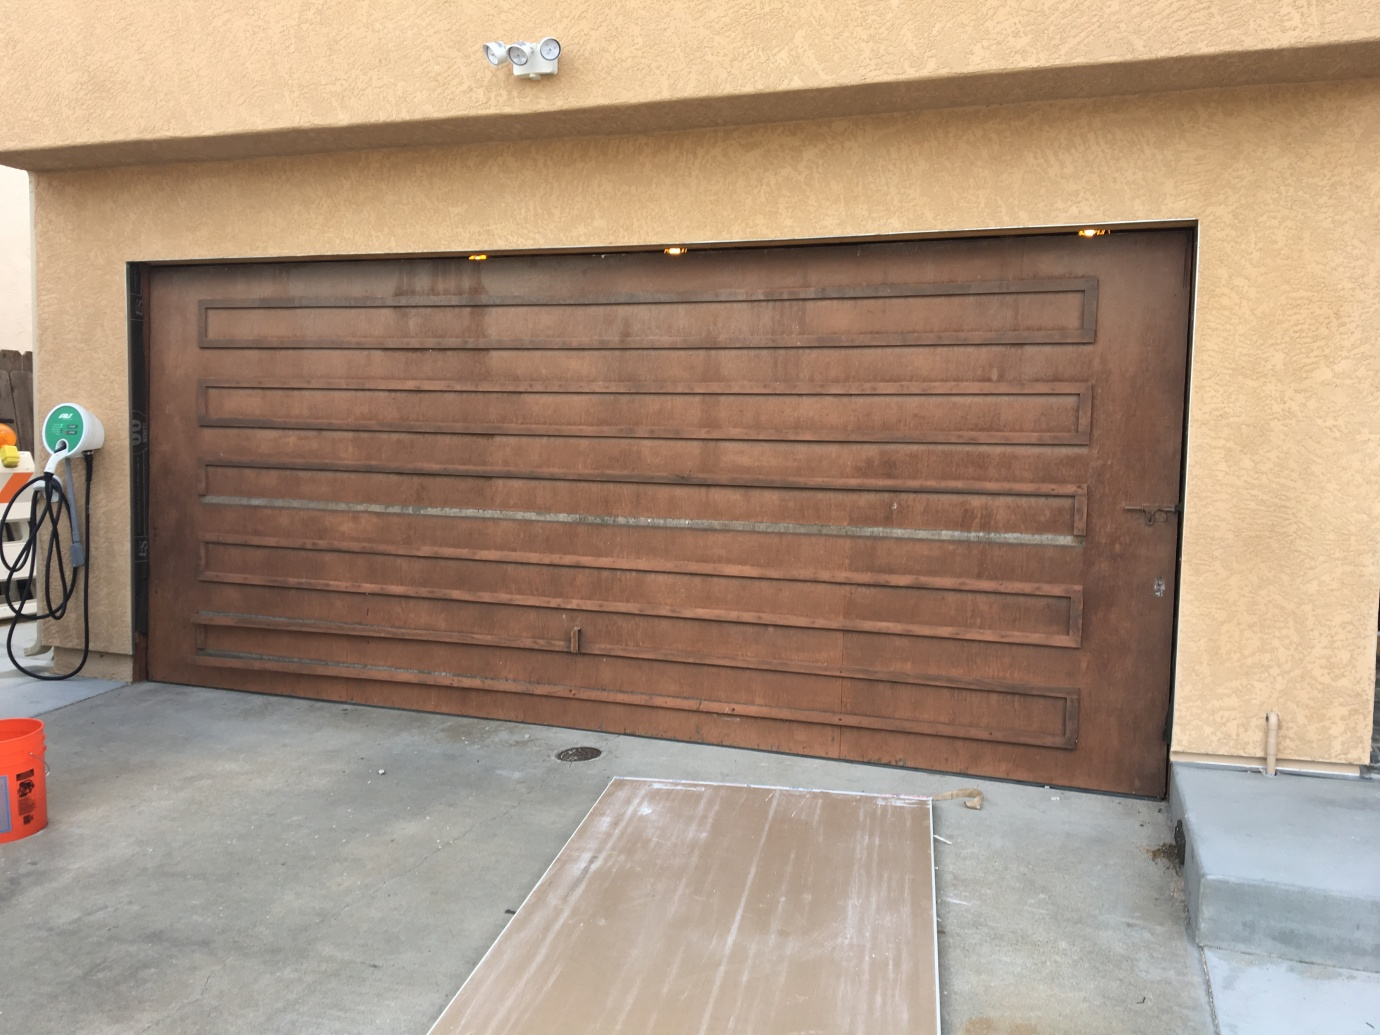 A New Garage Door | Frank's Home Remodeling Project